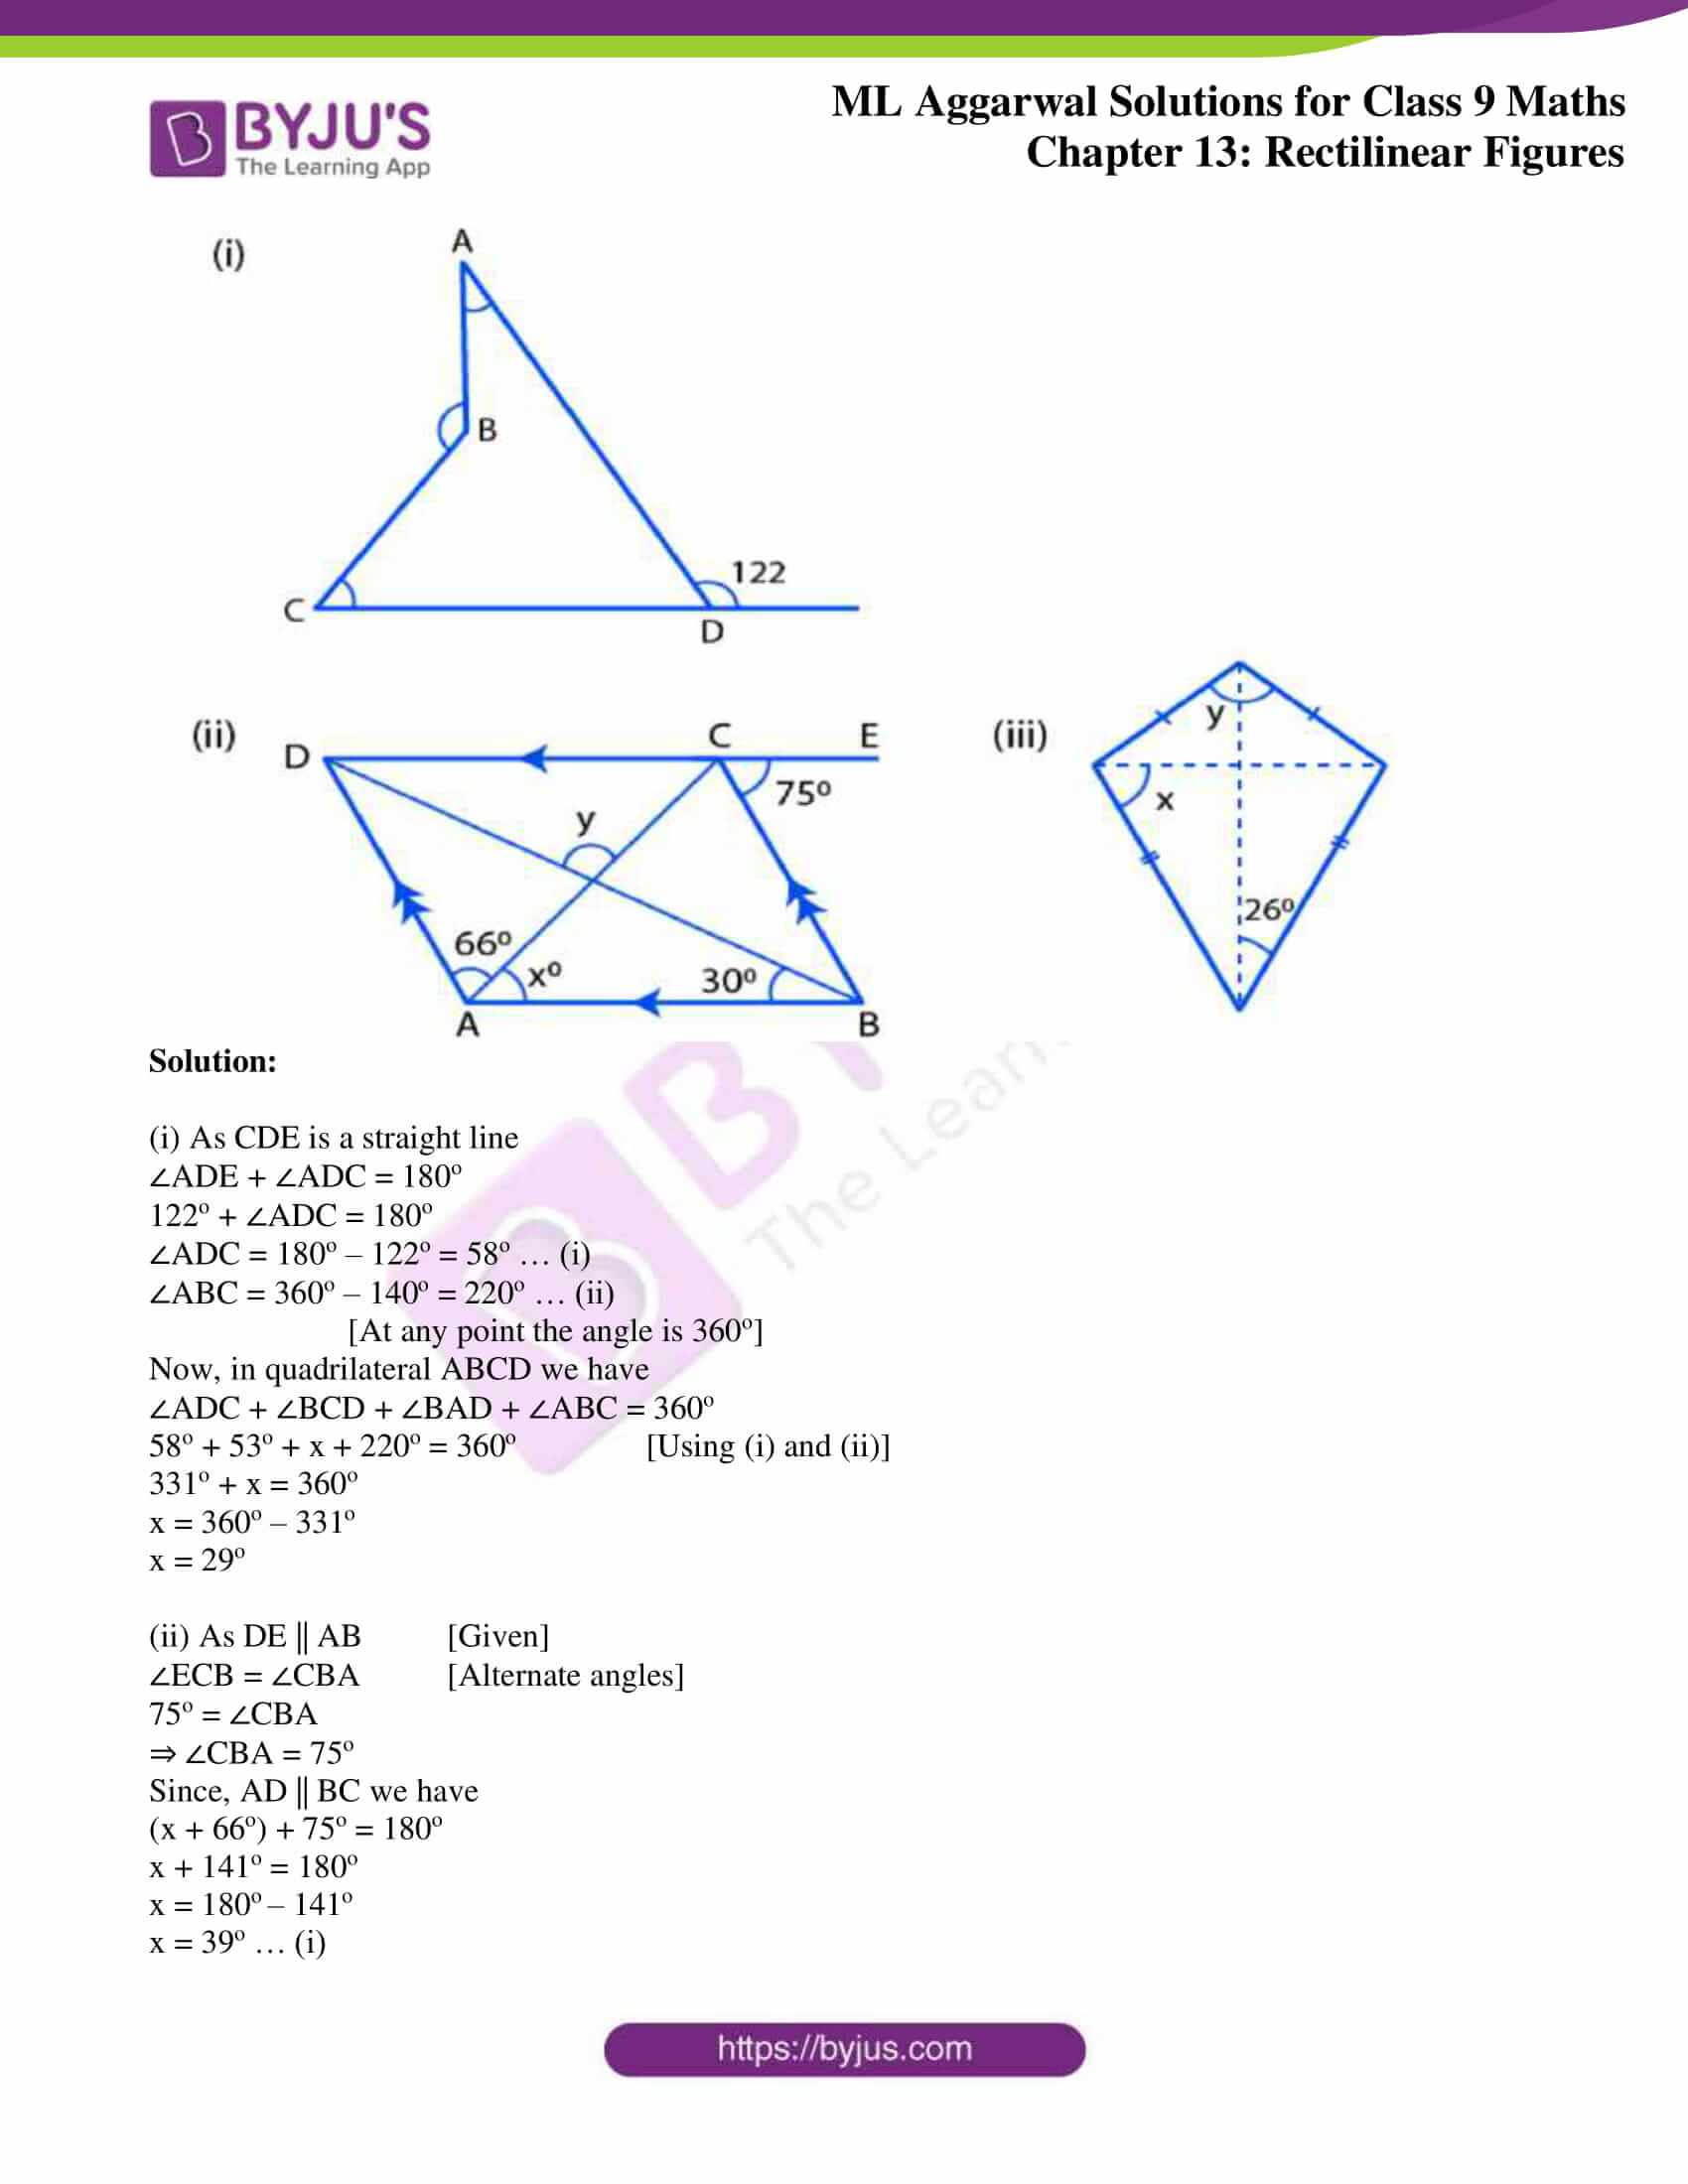 ml aggarwal solutions for class 9 maths chapter 13 41